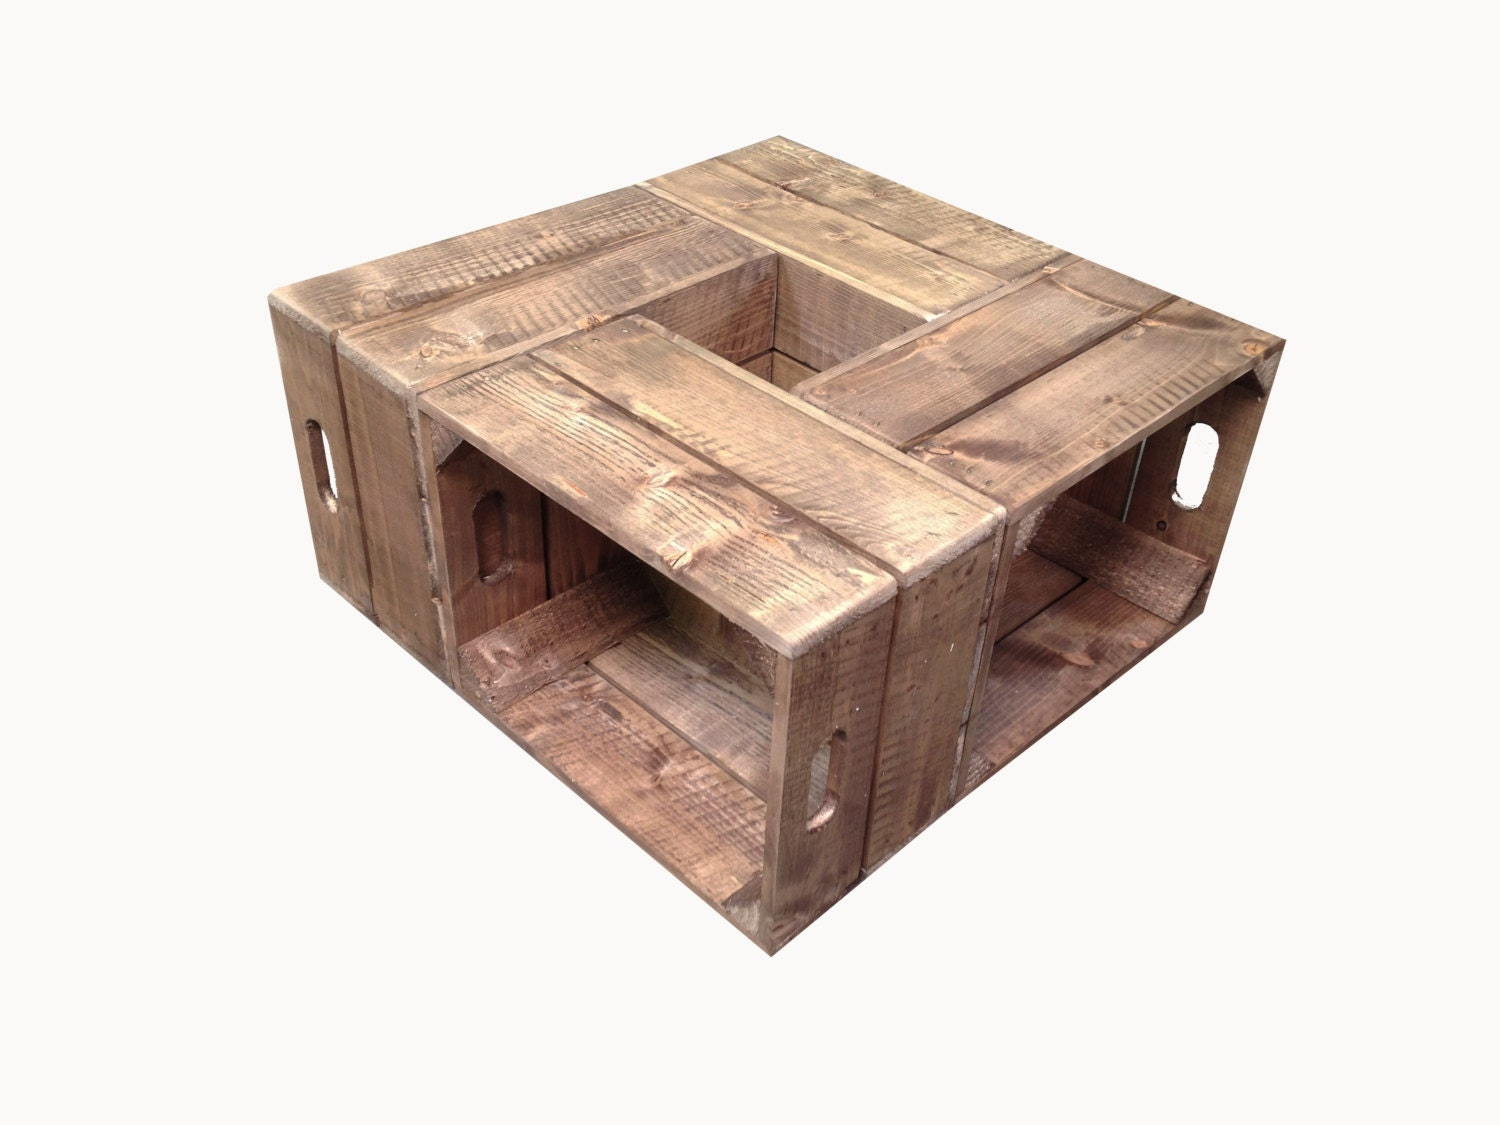 free uk shipping handmade rustic wooden crate coffee table. Black Bedroom Furniture Sets. Home Design Ideas